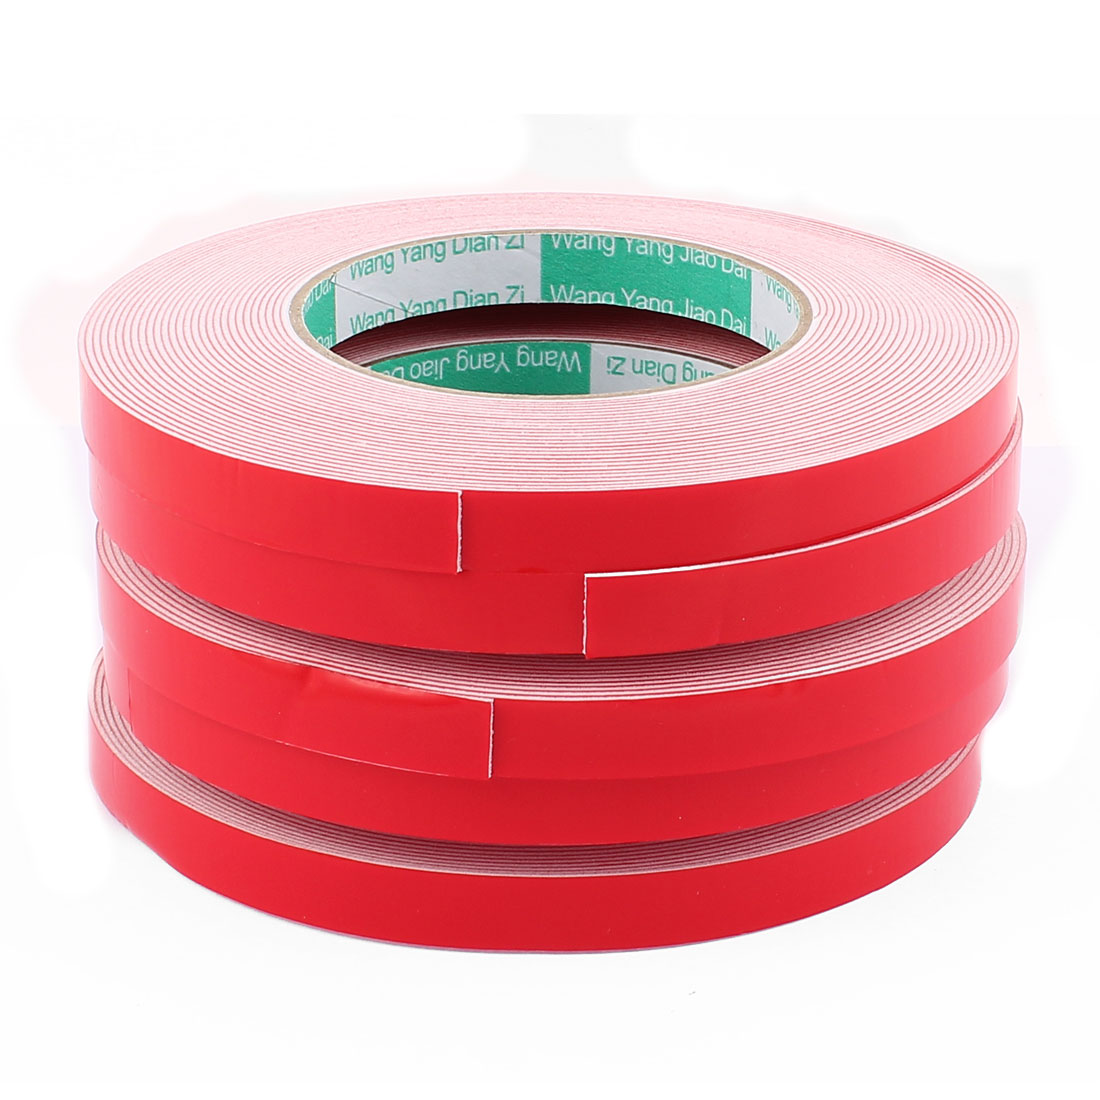 5PCS 1.2CM Width 10M Long 1MM Thick White Dual Sided Waterproof Sponge Tape for Car